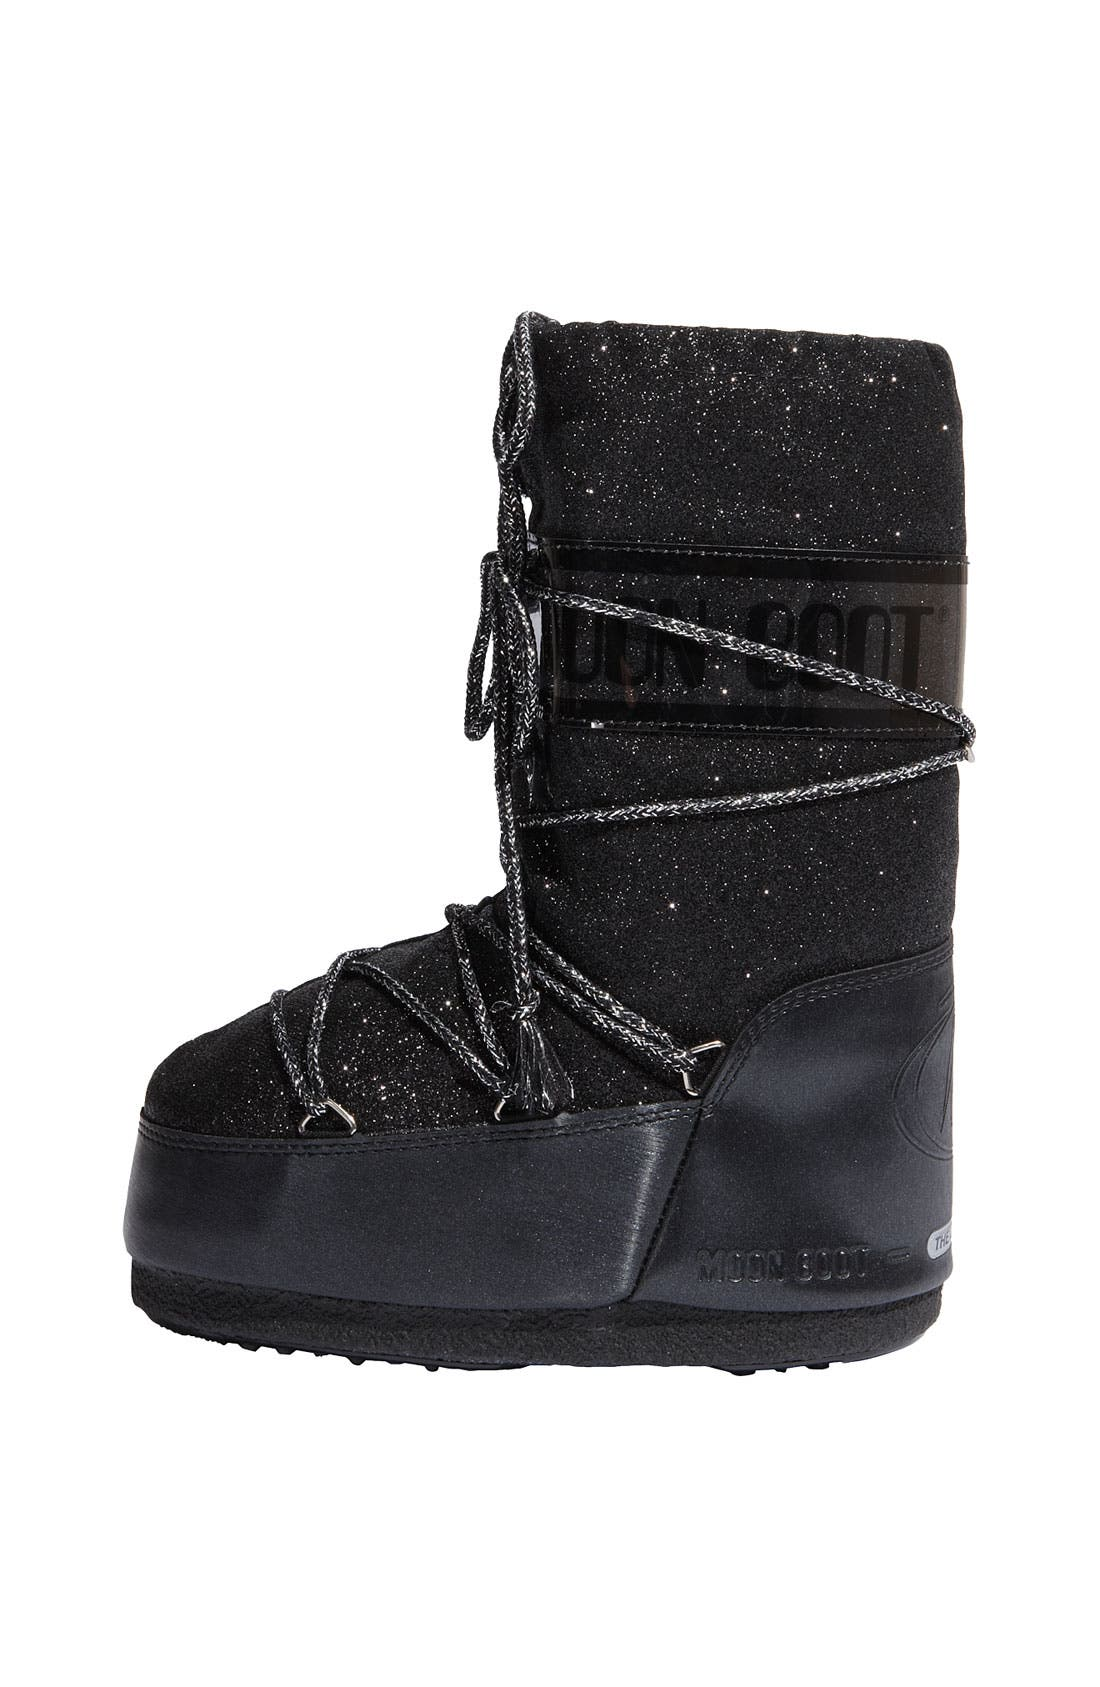 'Delux' Moon Boot<sup>®</sup>,                             Alternate thumbnail 4, color,                             001